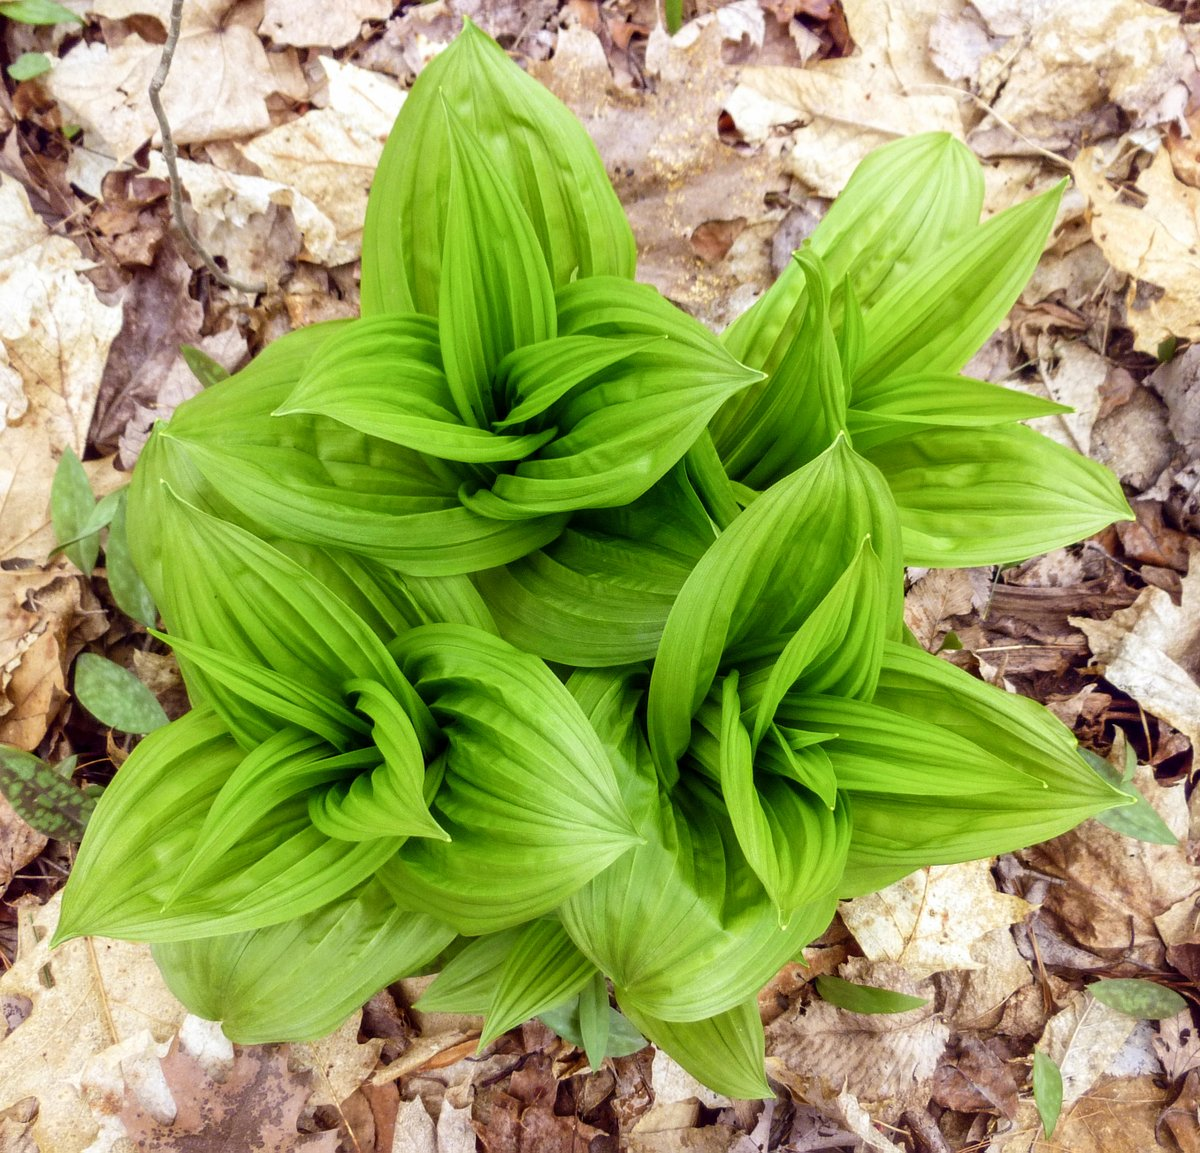 7. False Hellebore